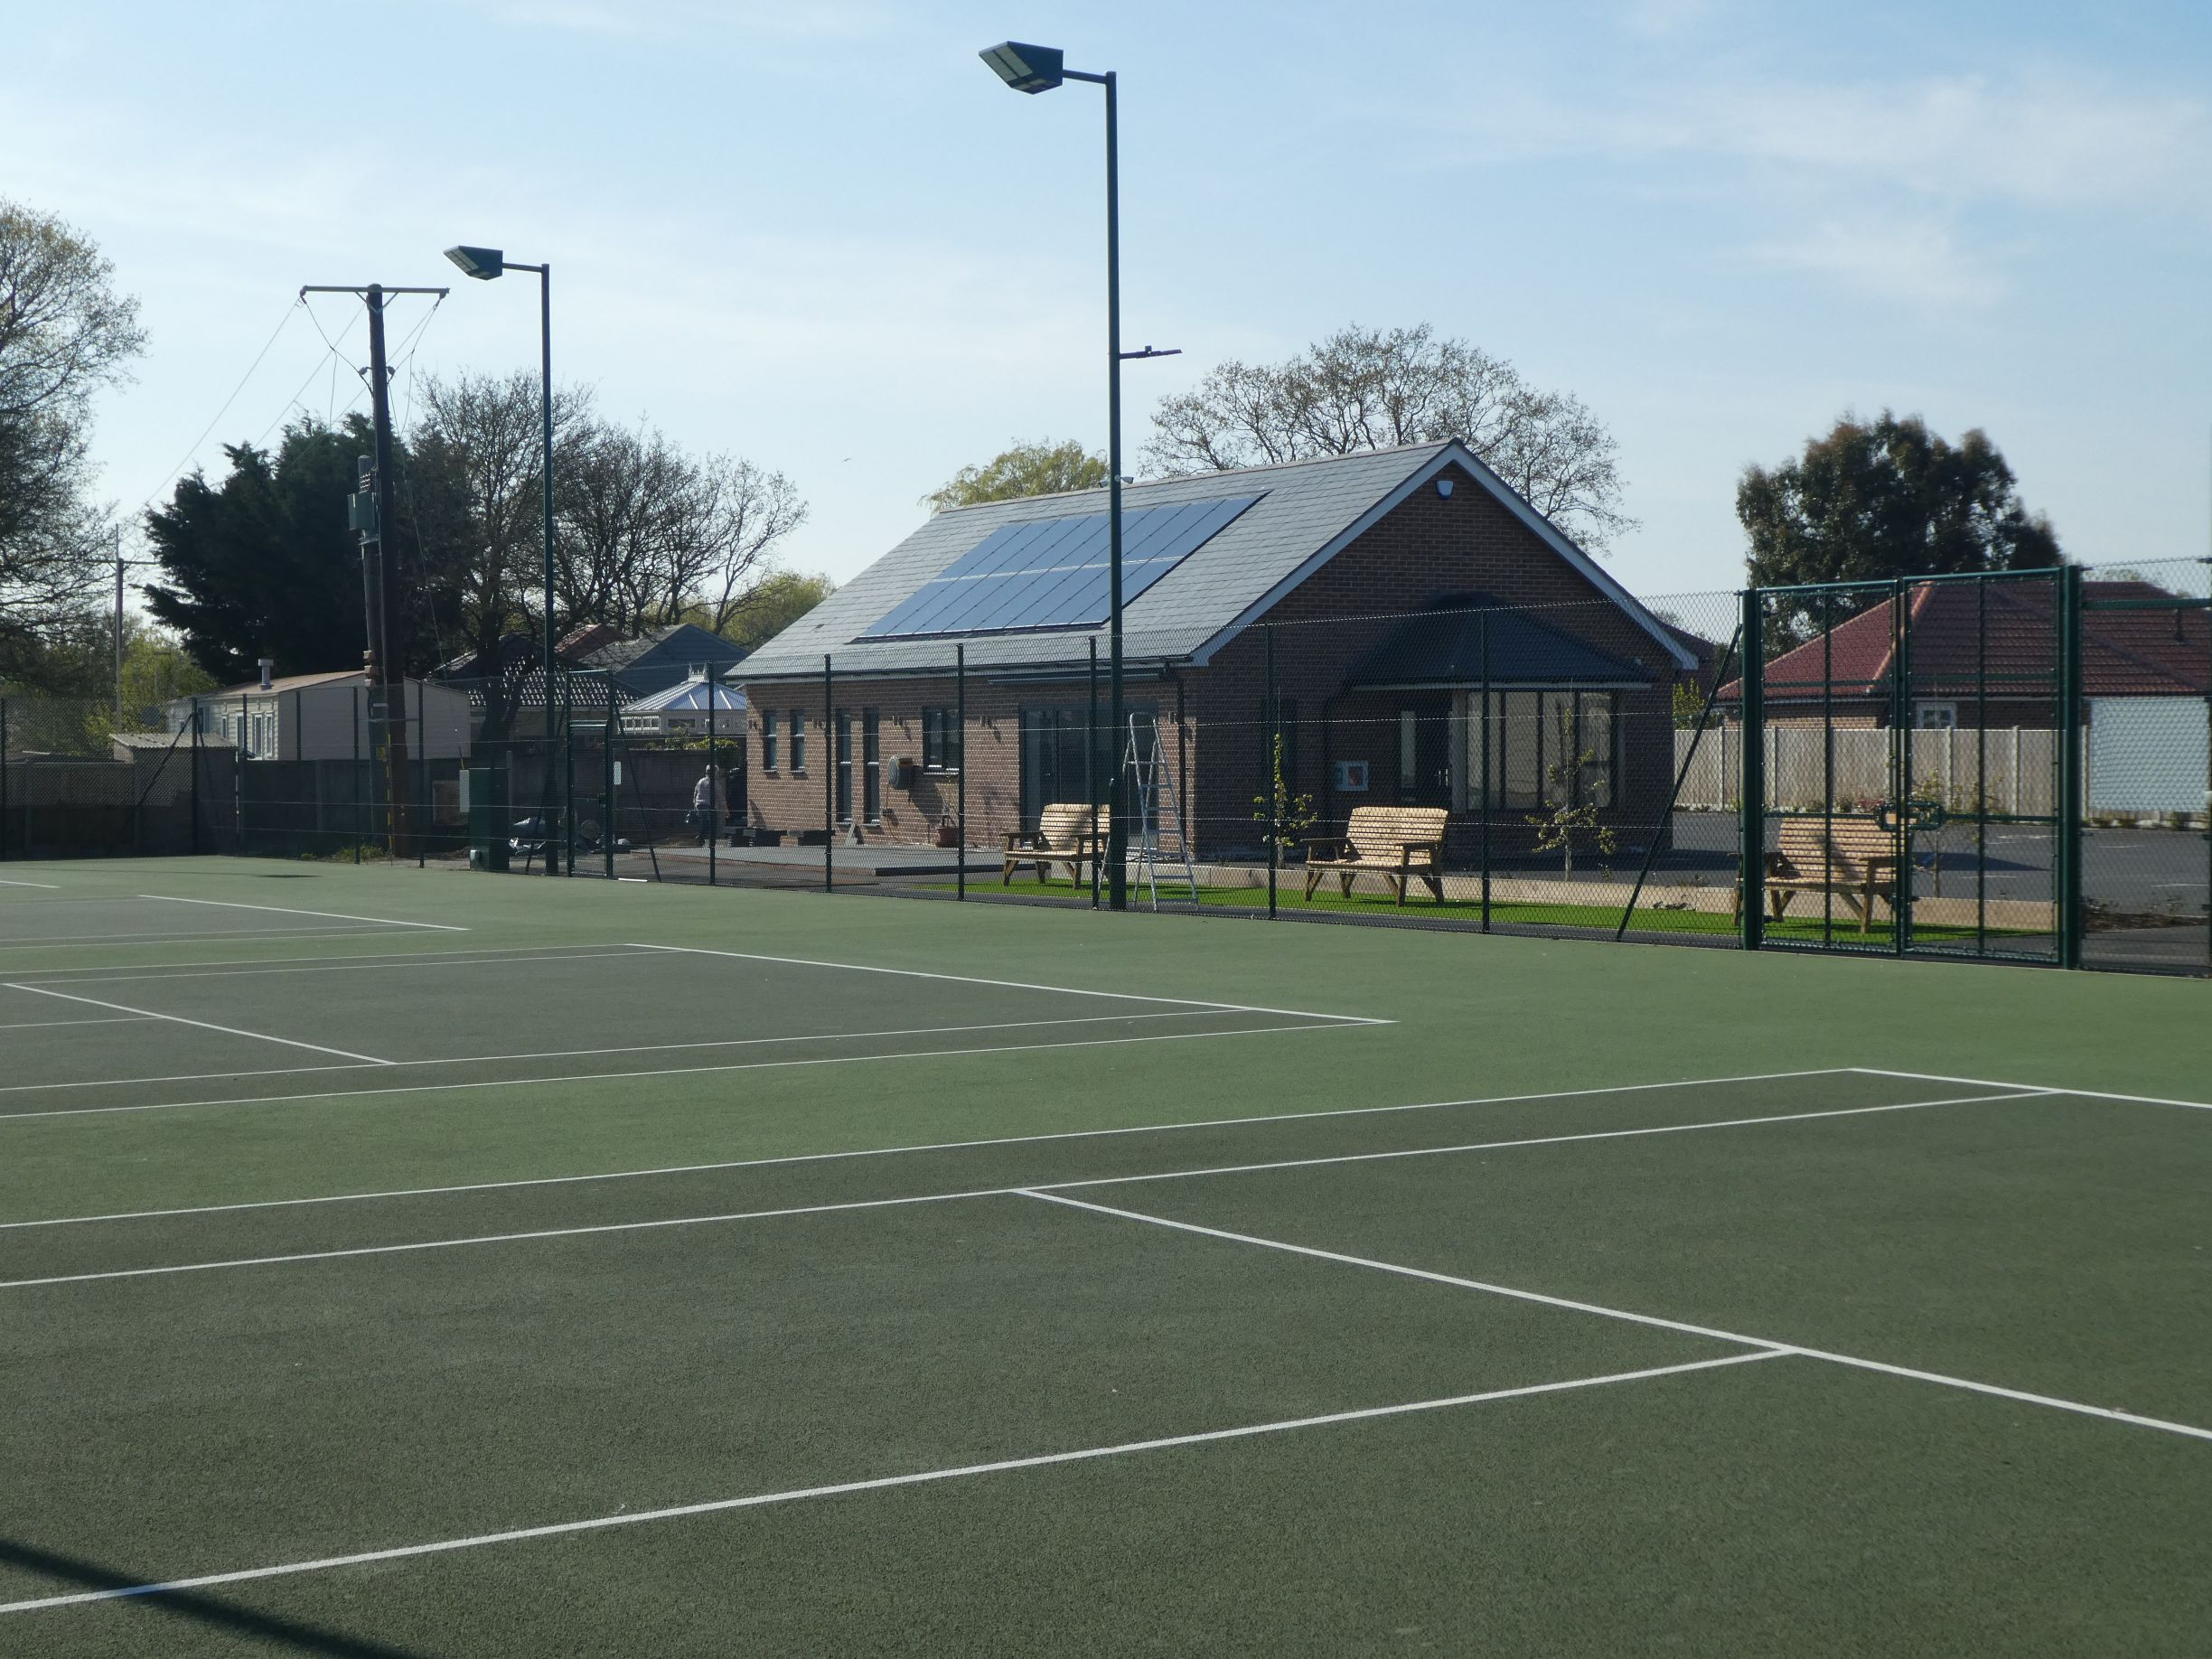 Little Clacton Tennis Club celebrated its 70th anniversary by revealing a major club upgrade, including four asphalt tennis courts and an eco-friendly clubhouse